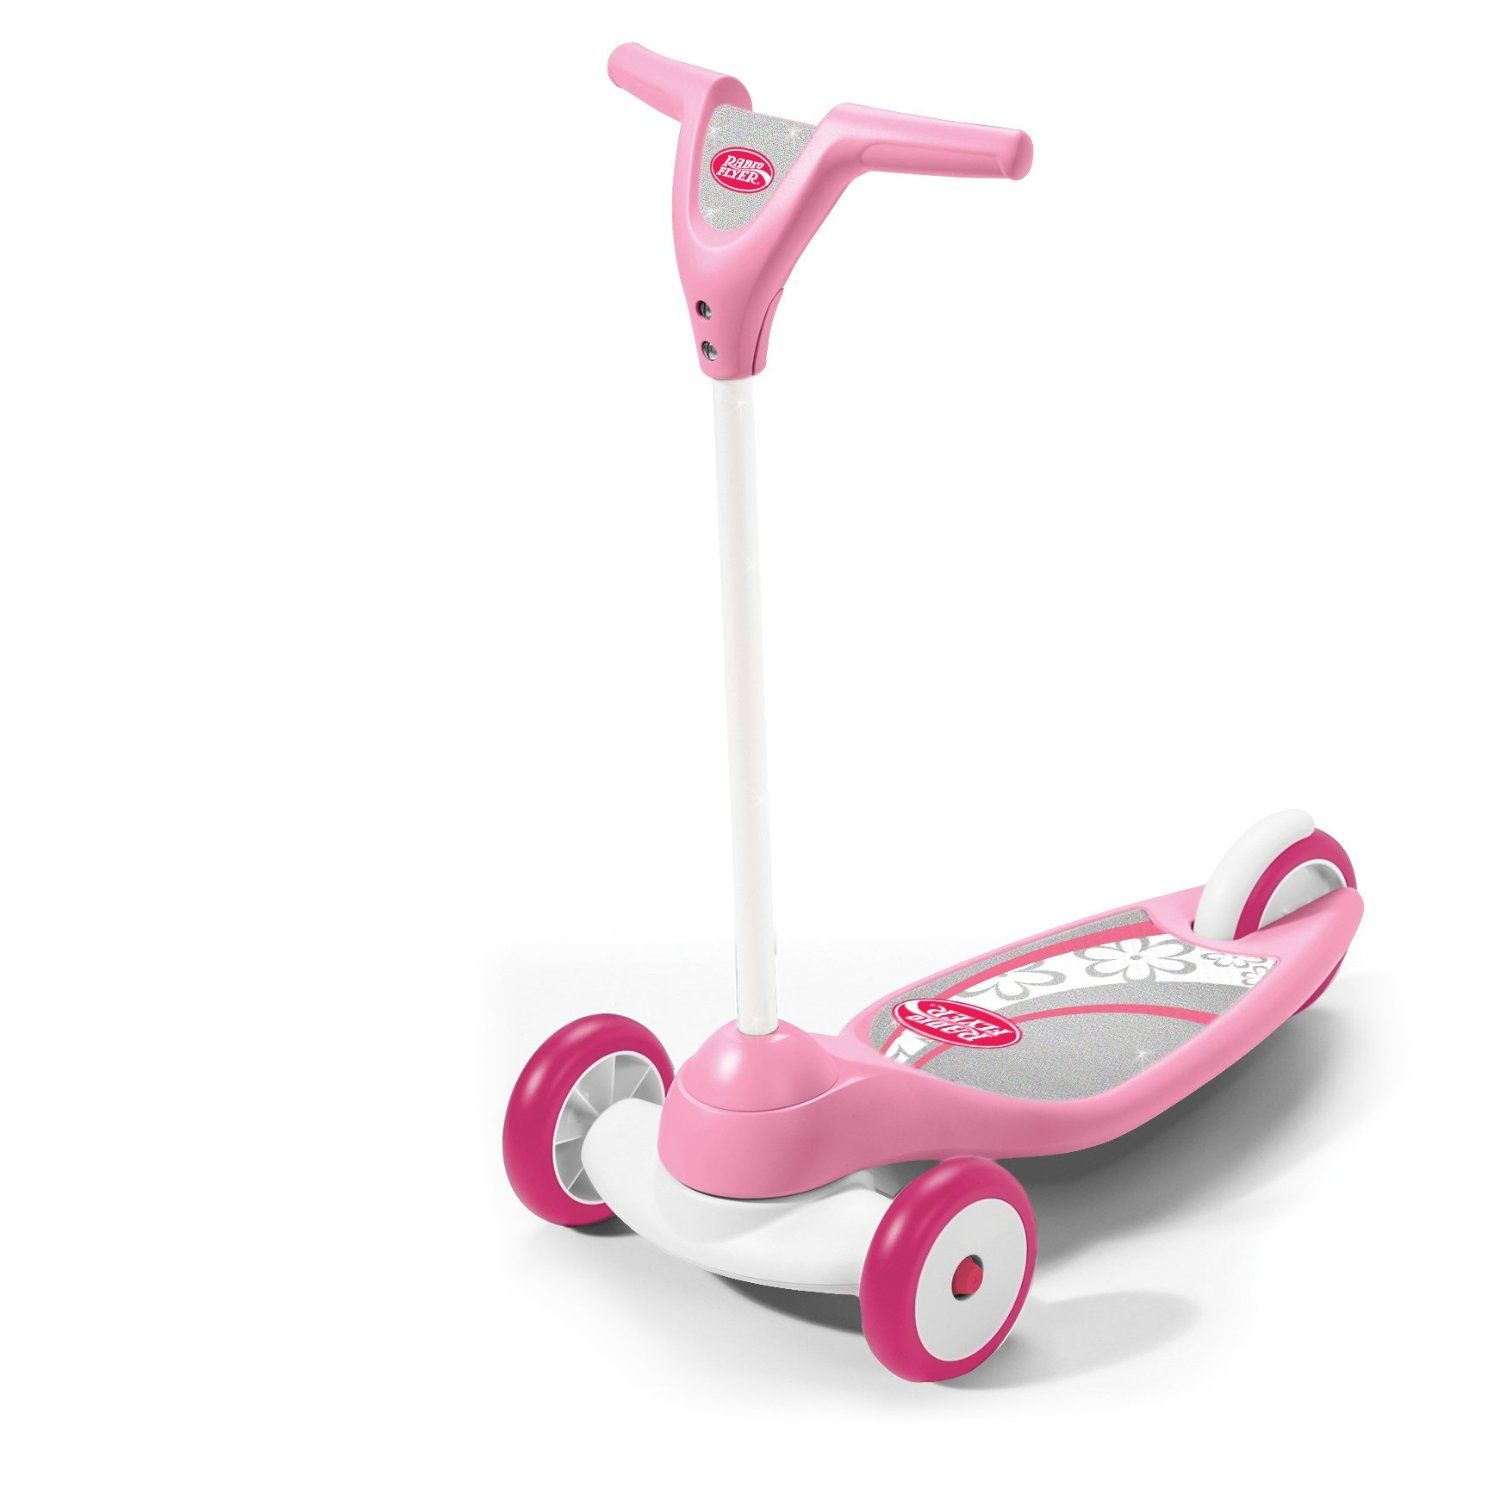 Radio Flyer My 1st Scooter, Pink Only $24 (Reg. $39.99) | Radio ...